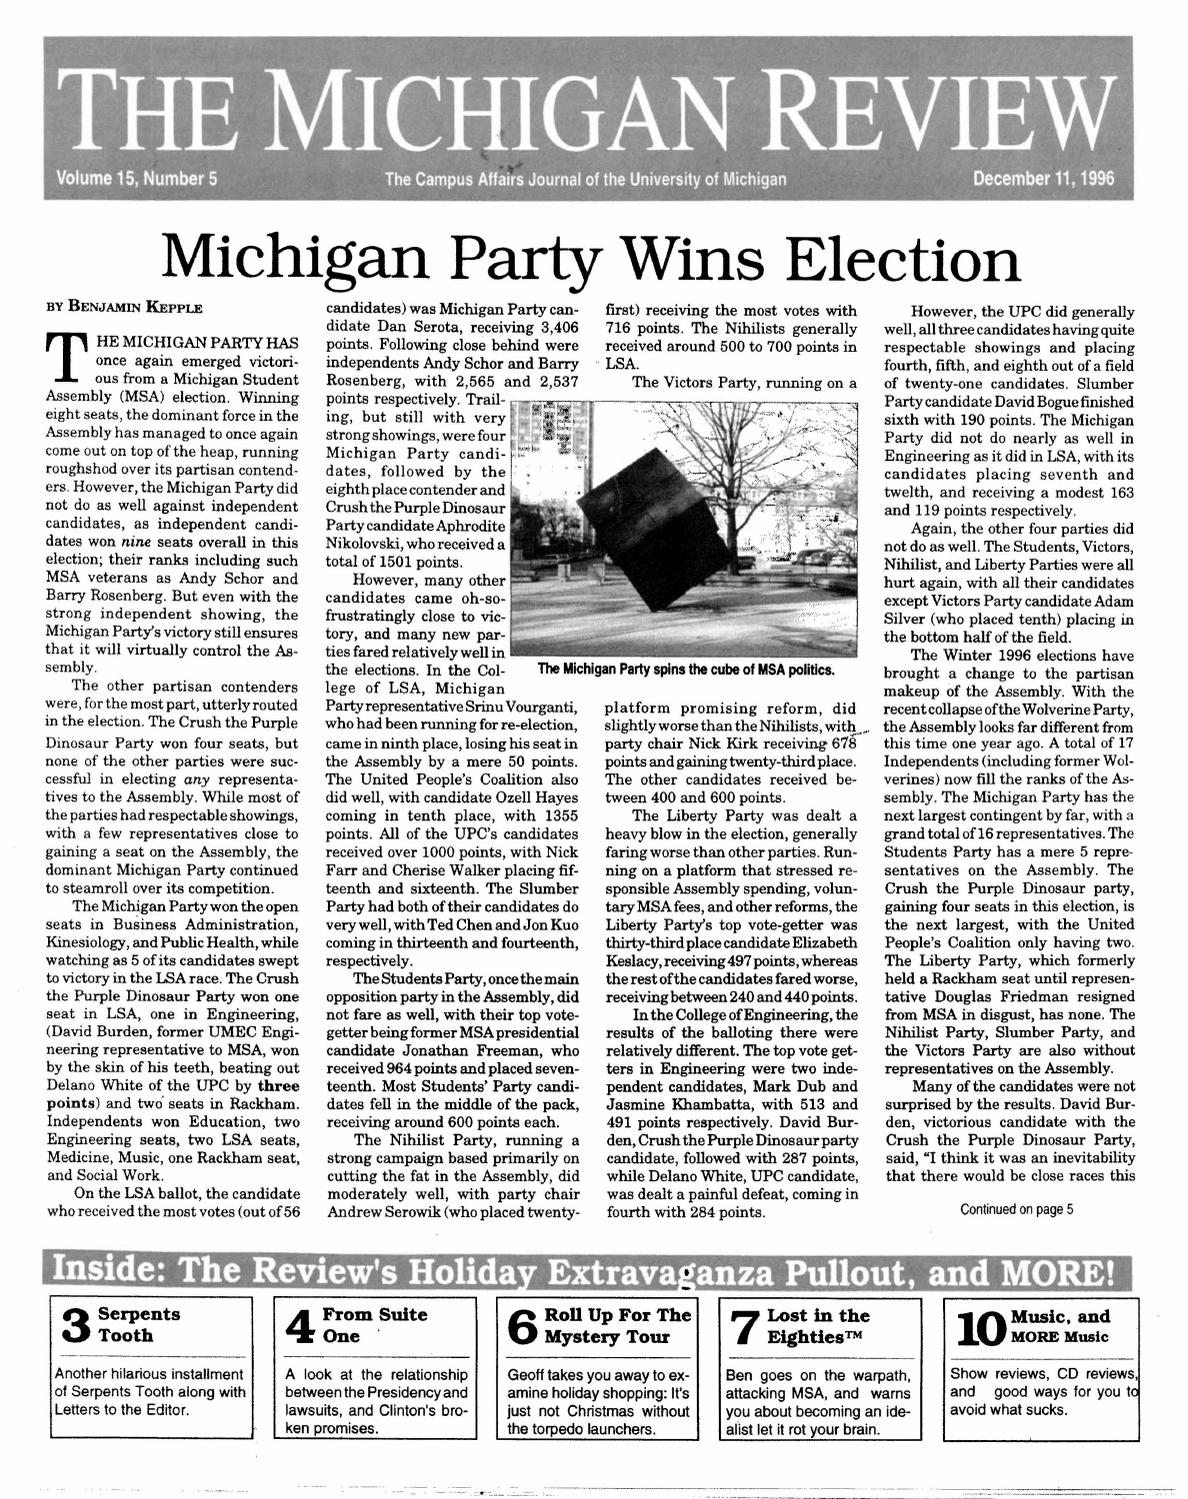 vol_15_no_5.1 by Michigan Review - issuu